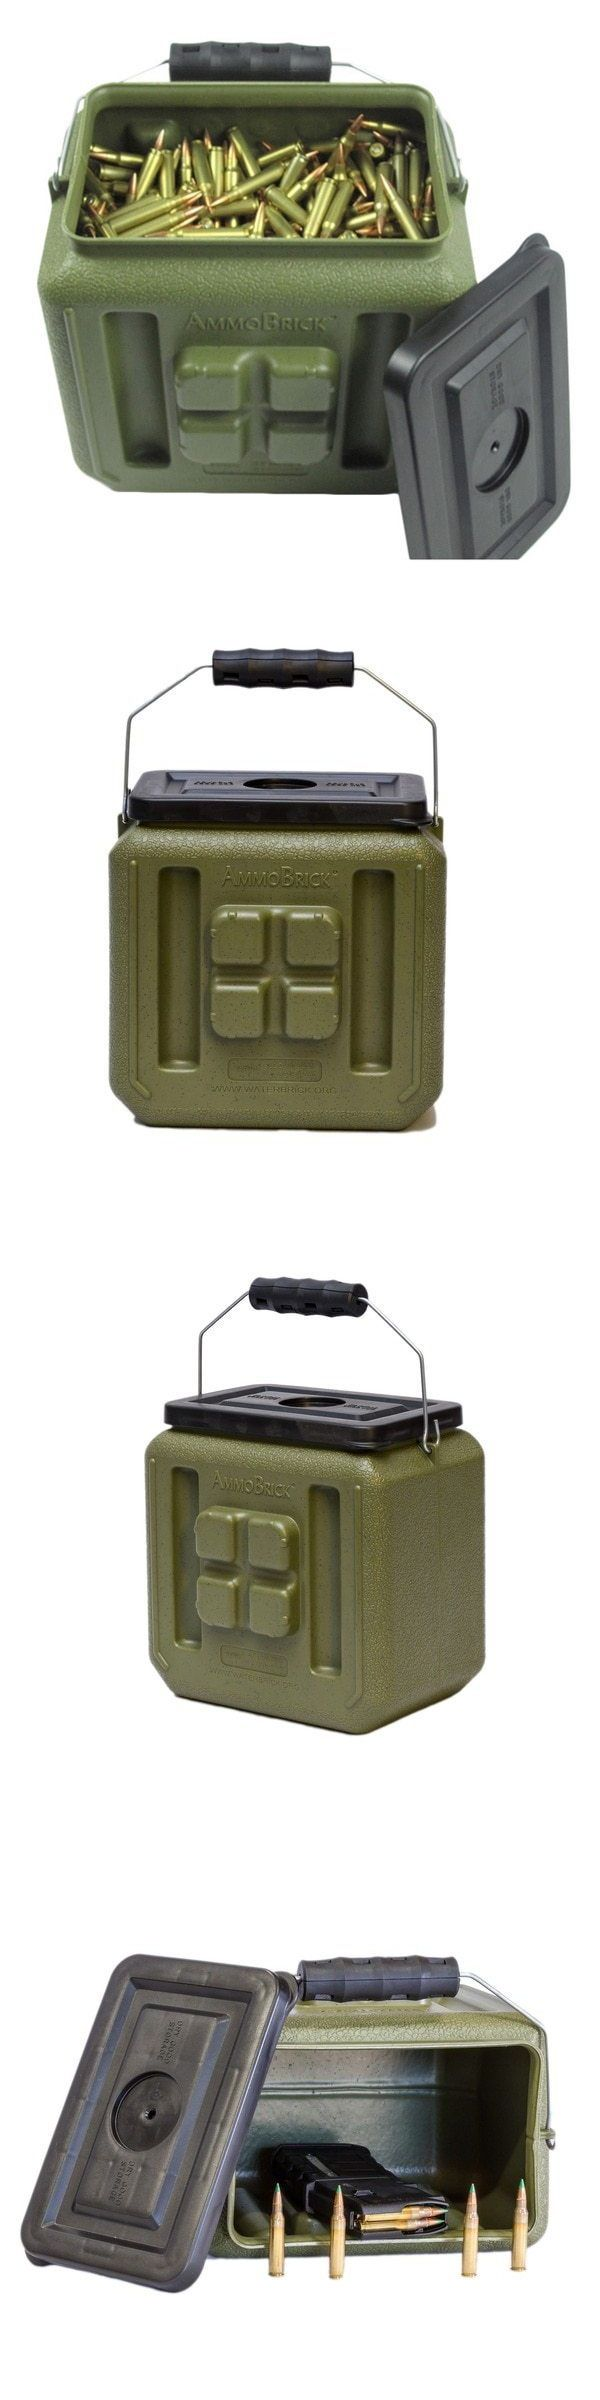 Ammunition Cases and Cans 177886: Waterbrick Ammobrick 1.6 Gal. Stackable Ammo Storage Container Waterproof Box -> BUY IT NOW ONLY: $33.99 on eBay!